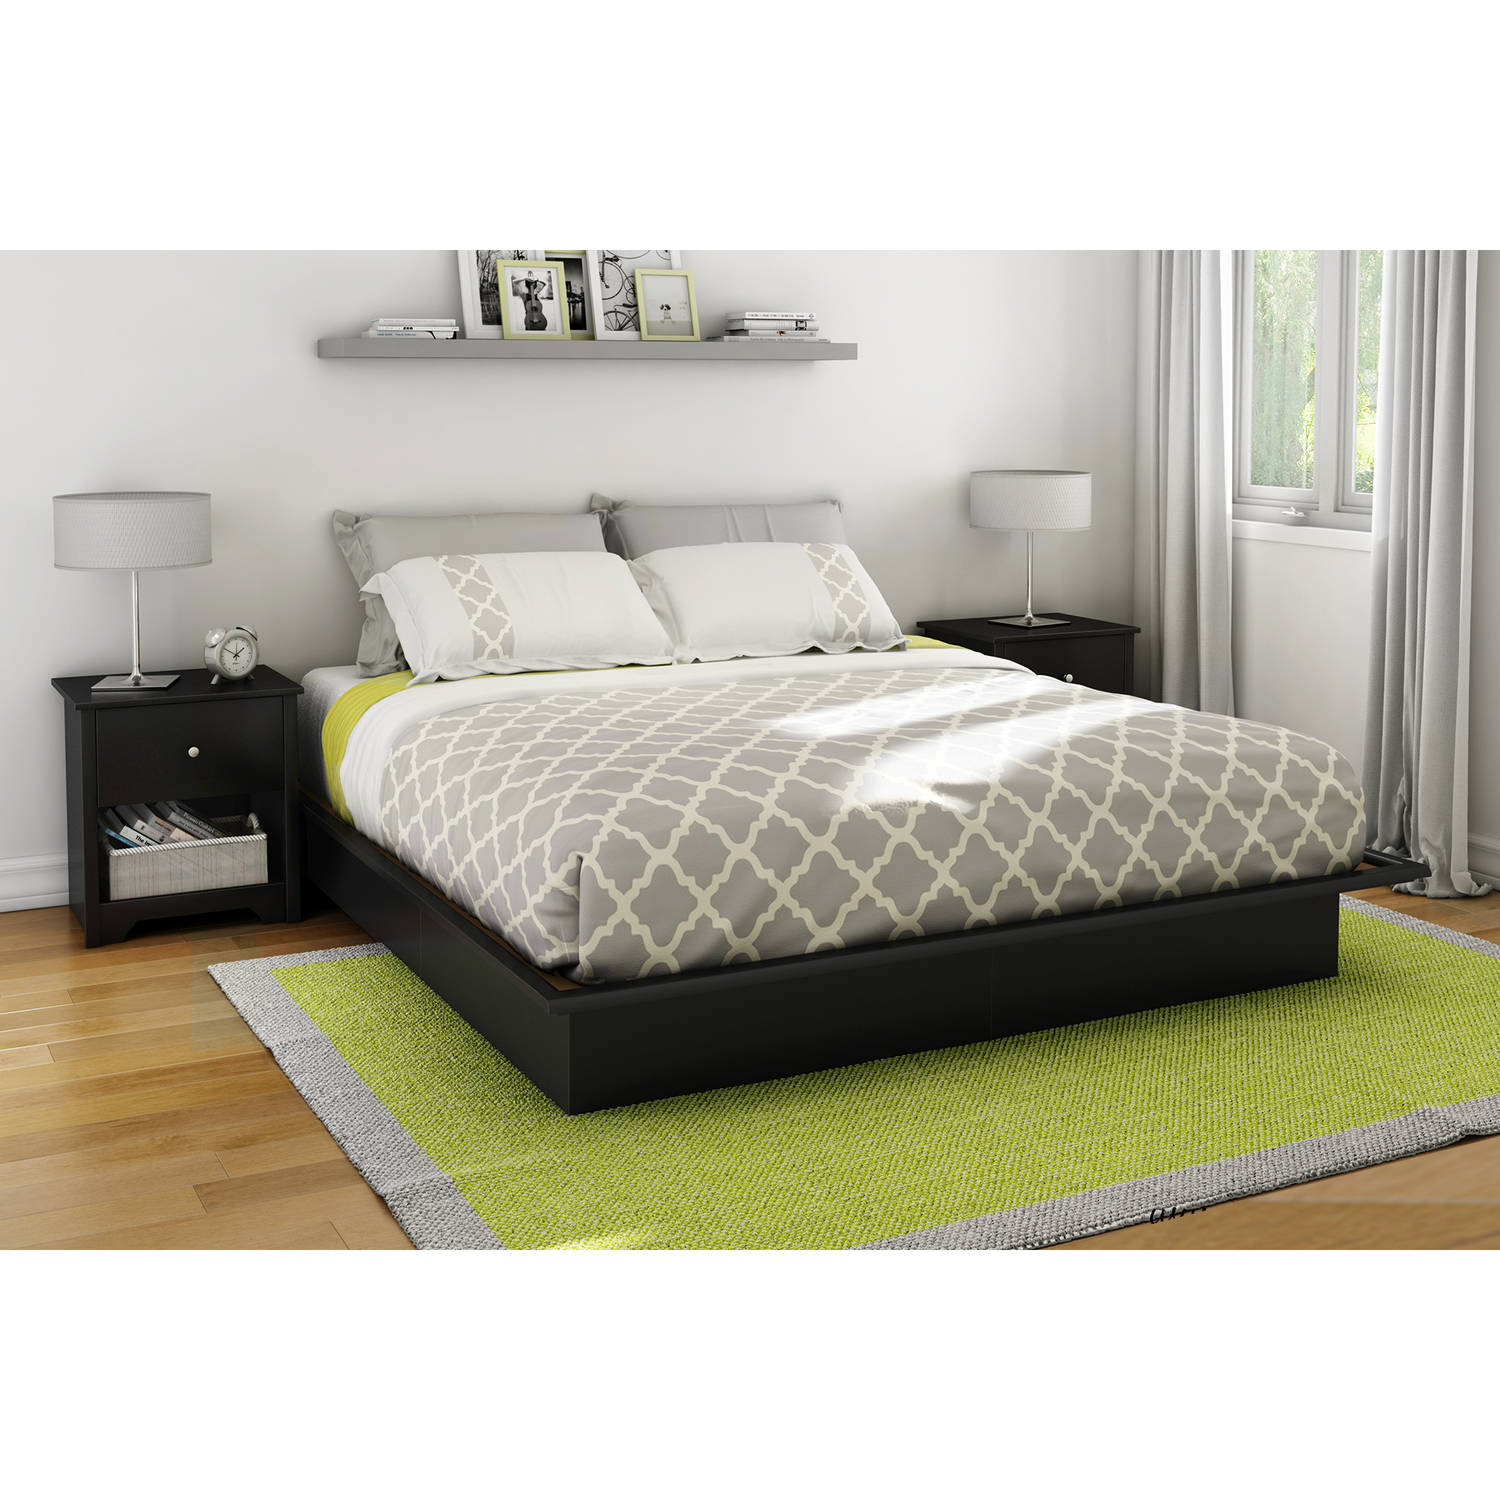 Queen Size Platform Bed Frame Bedroom Foundation Furniture